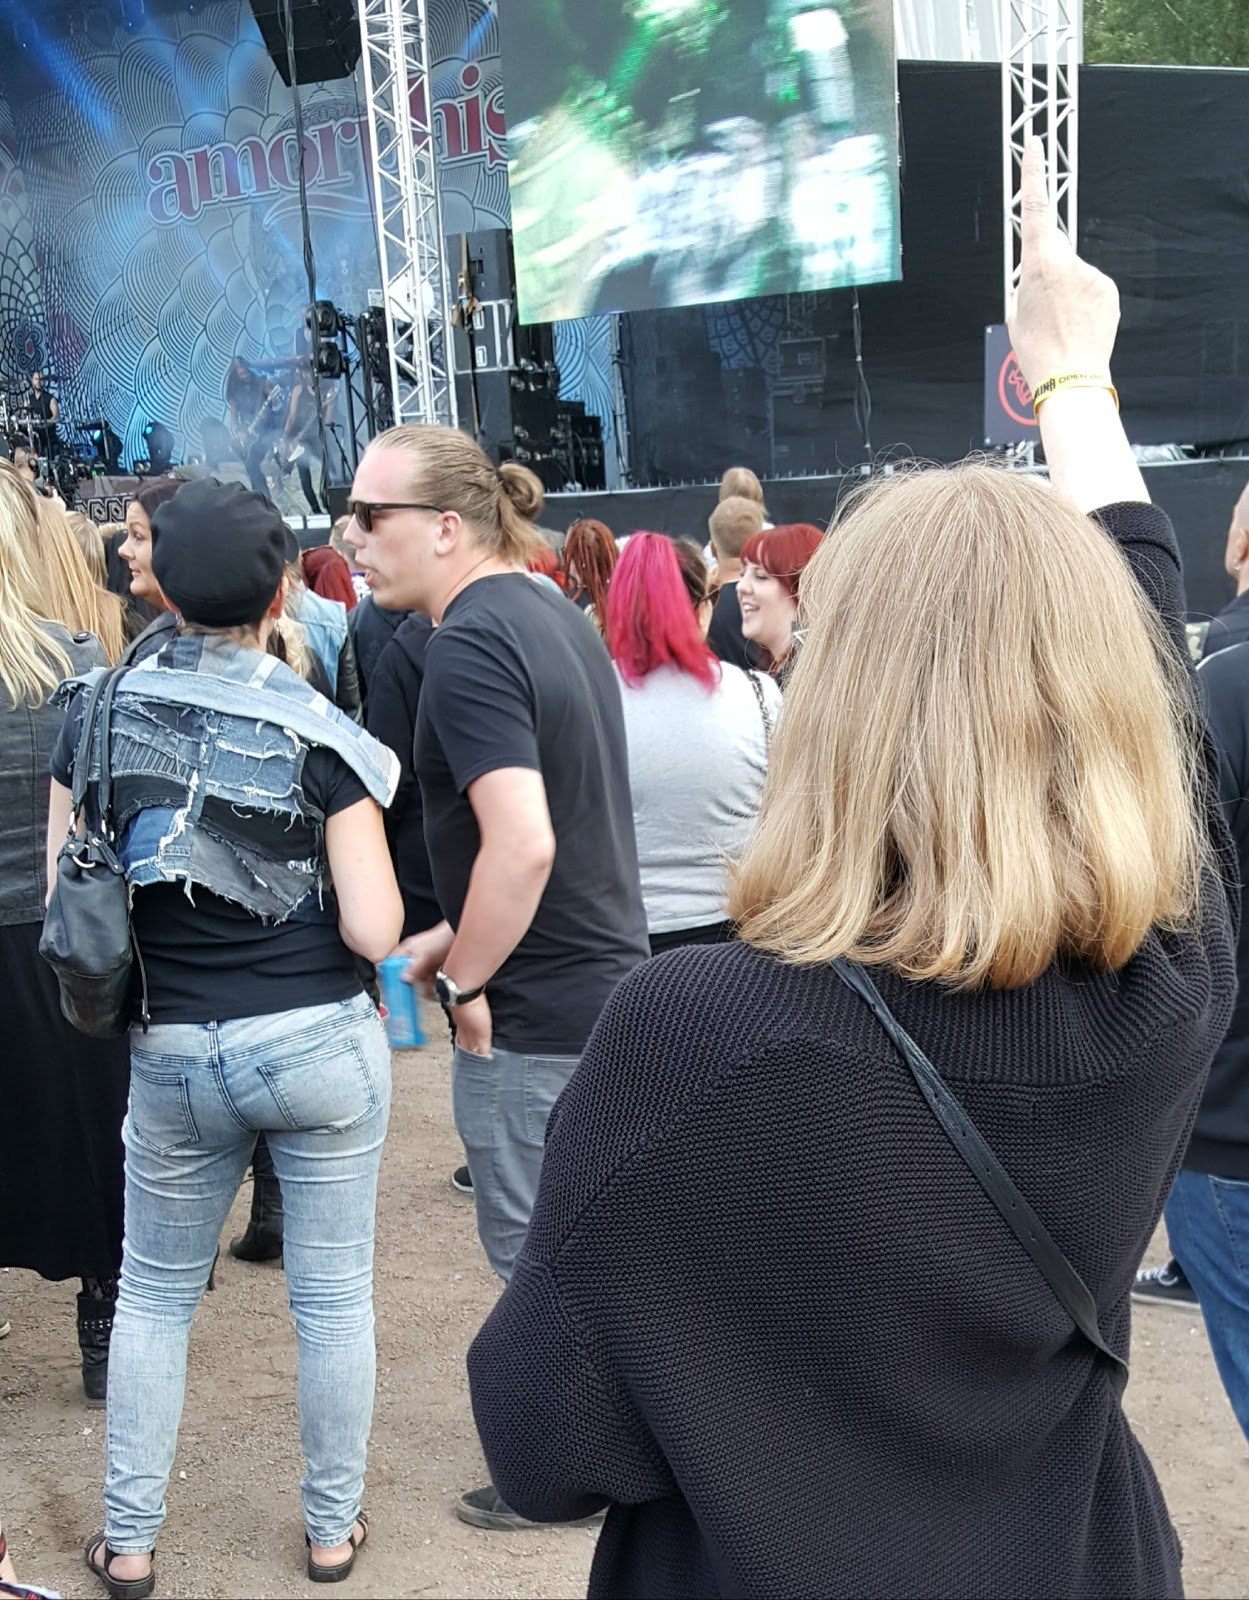 Sauna Open Air 2019